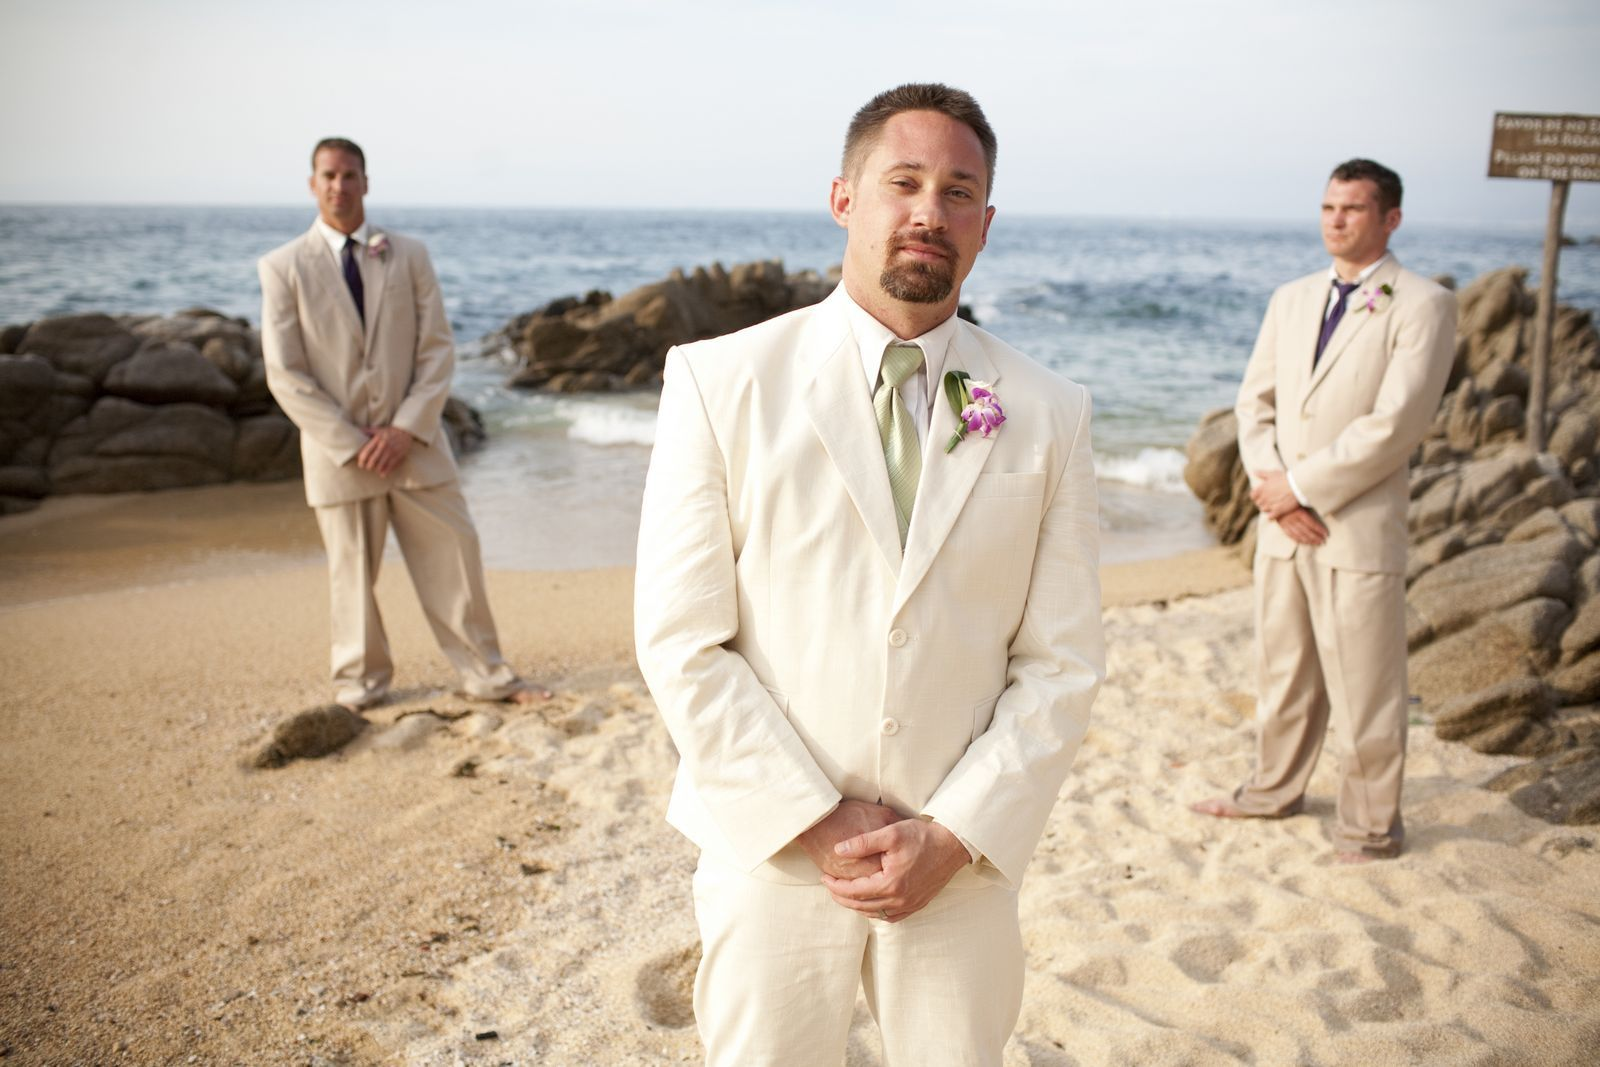 Linen Suits for Men Beach Wedding | Wedding: Men's suits ...